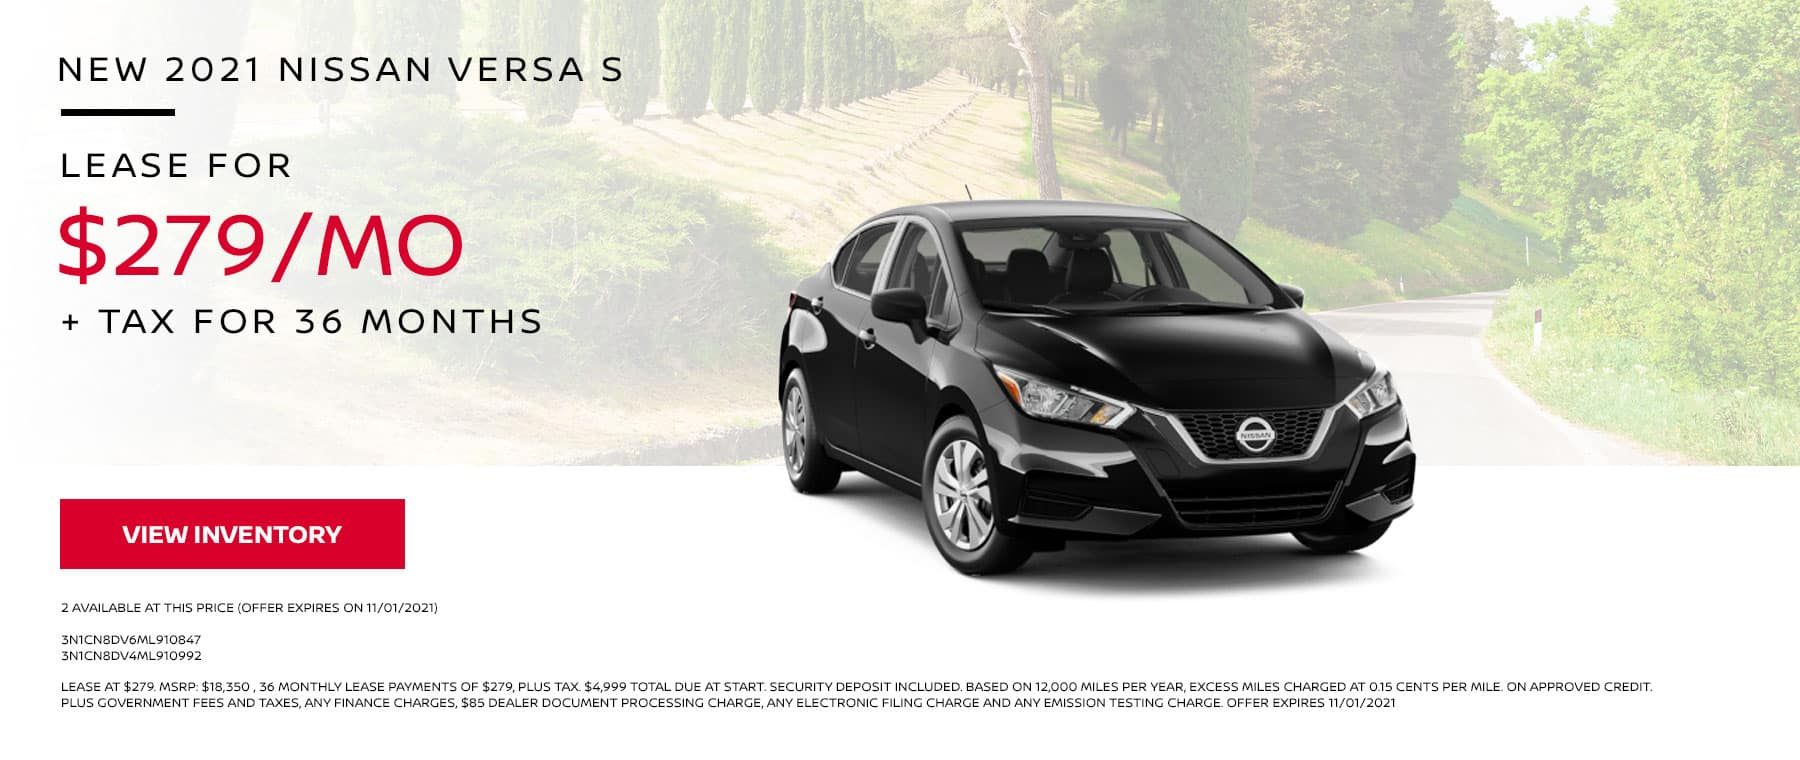 New 2021 Nissan Versa S. Lease for $279 per Month + Tax for 36 Months